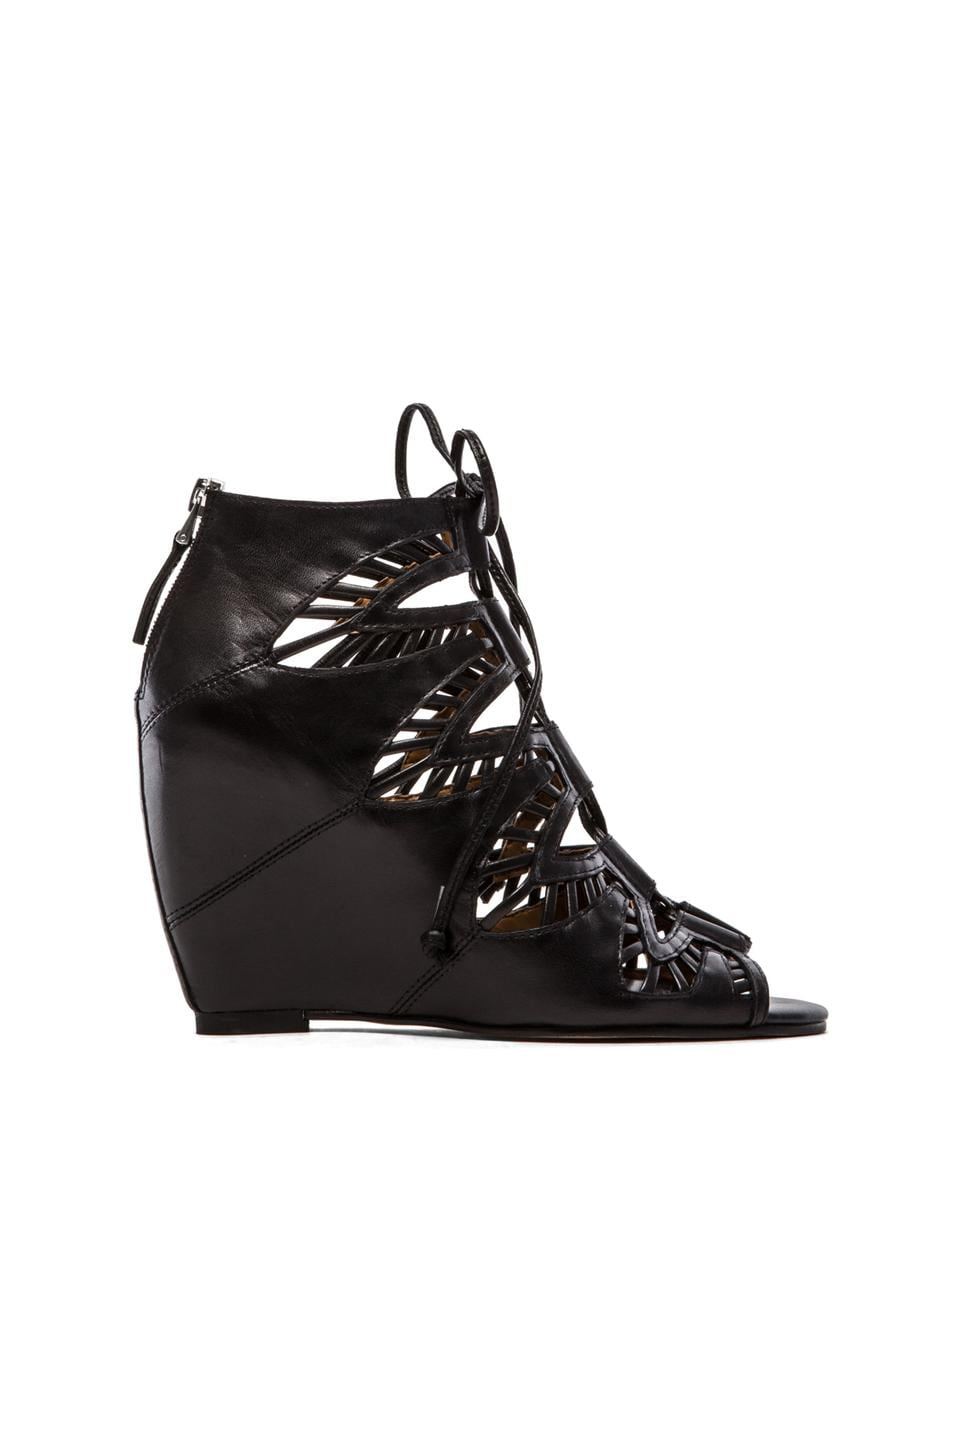 Dolce Vita Shandy Wedge in Black